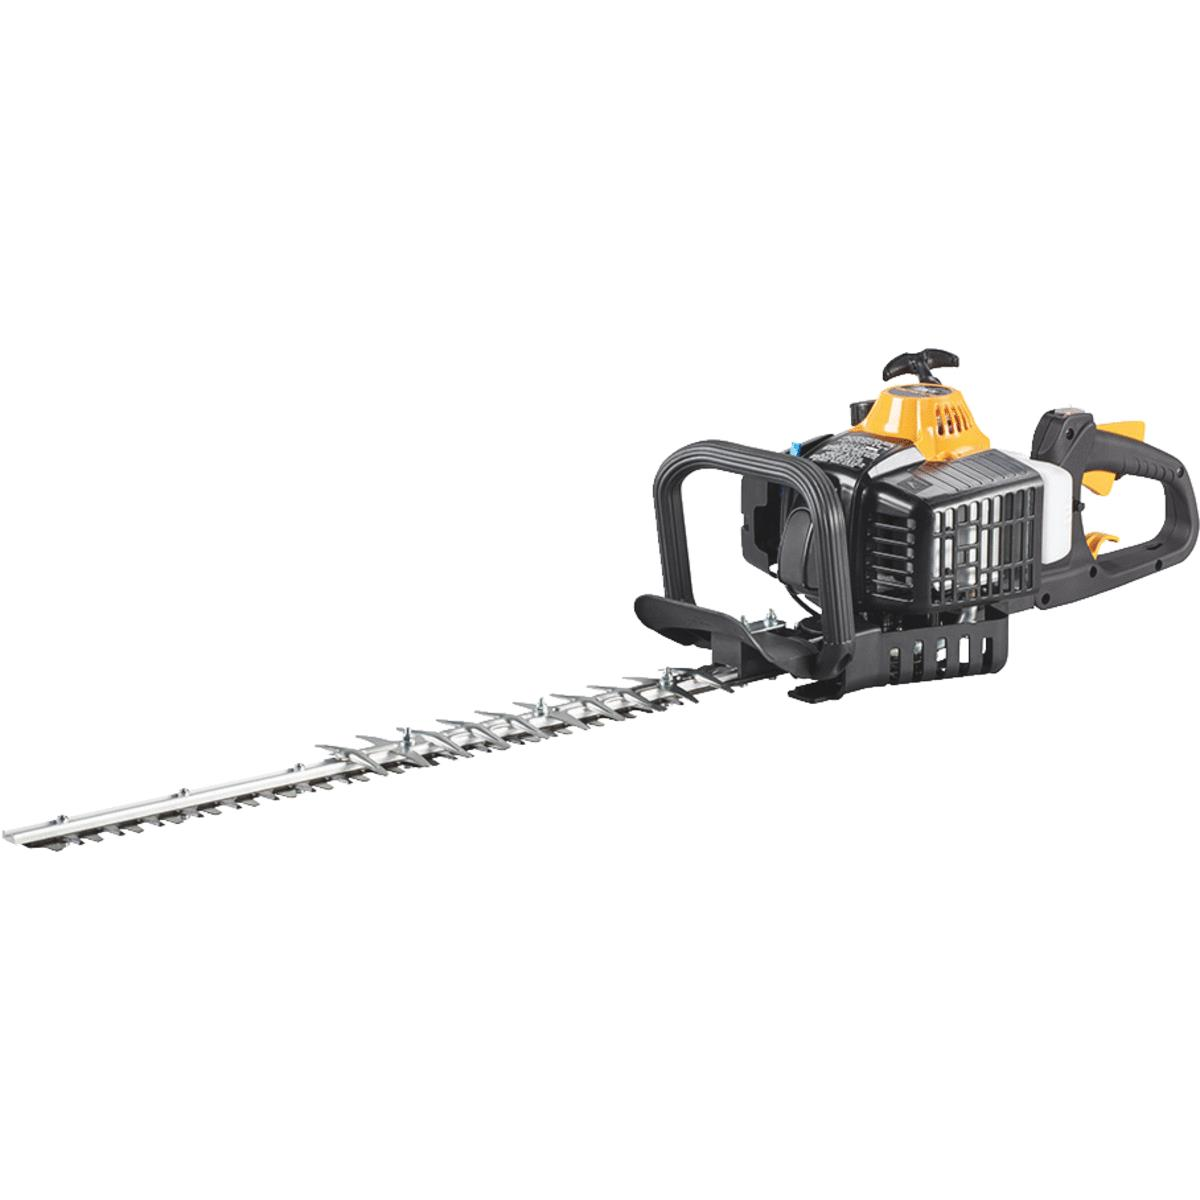 Buy Poulan Pro PP2822 22 In. Gas Hedge Trimmer 22 In.